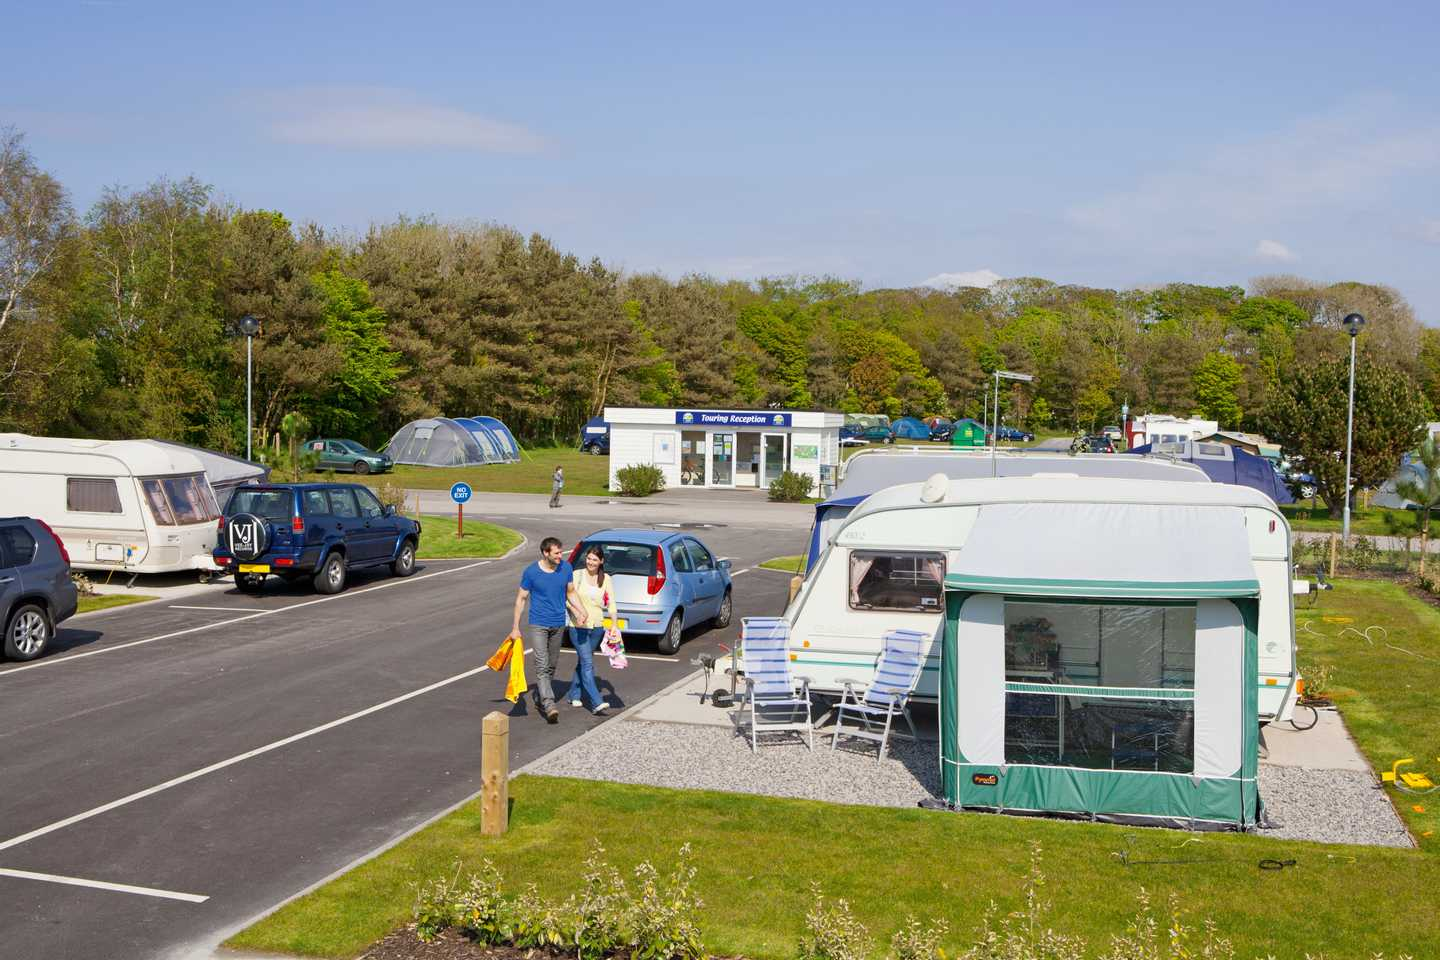 The touring area at Lakeland